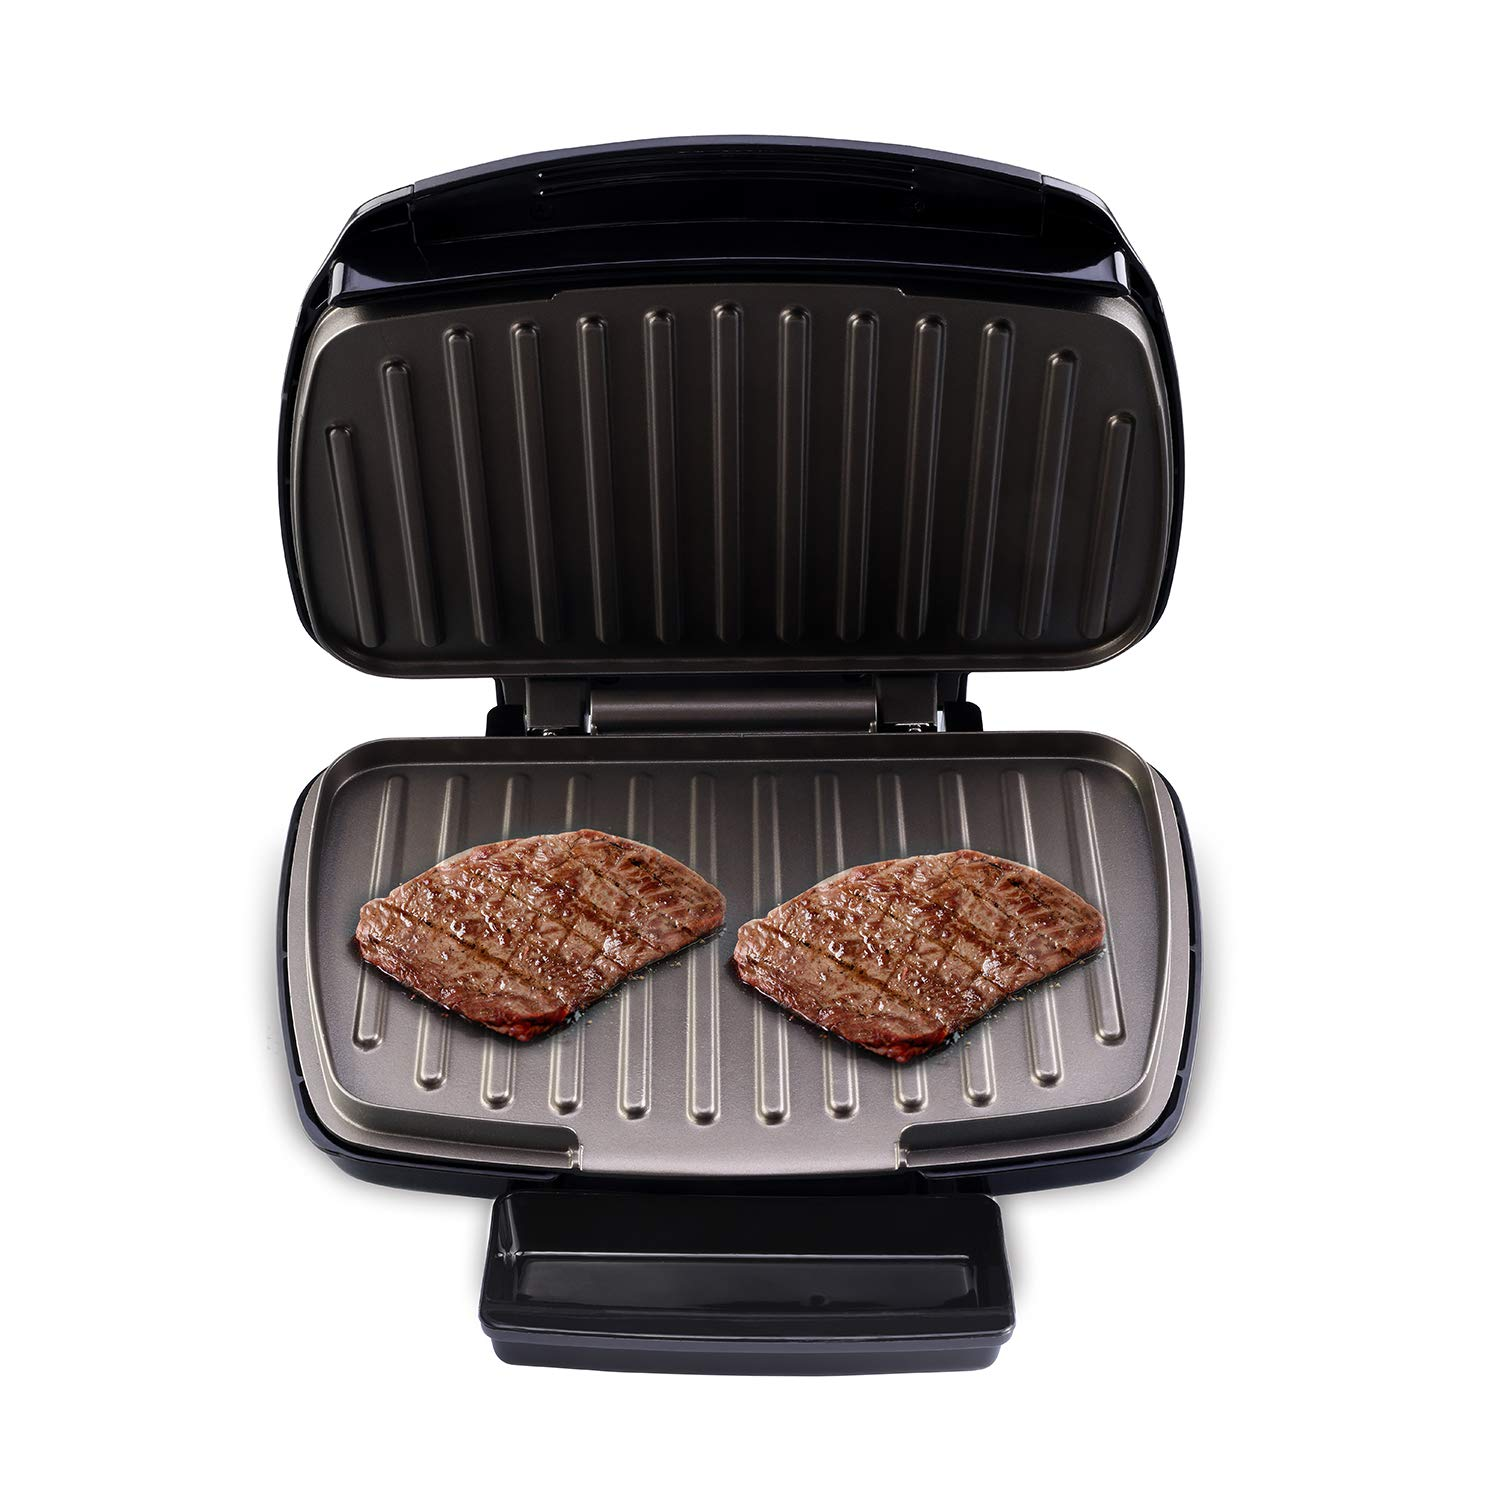 Health and Home 2-Serving Classic Plate Grill Maker and Panini Press, Black, KS-306 by Health and Home